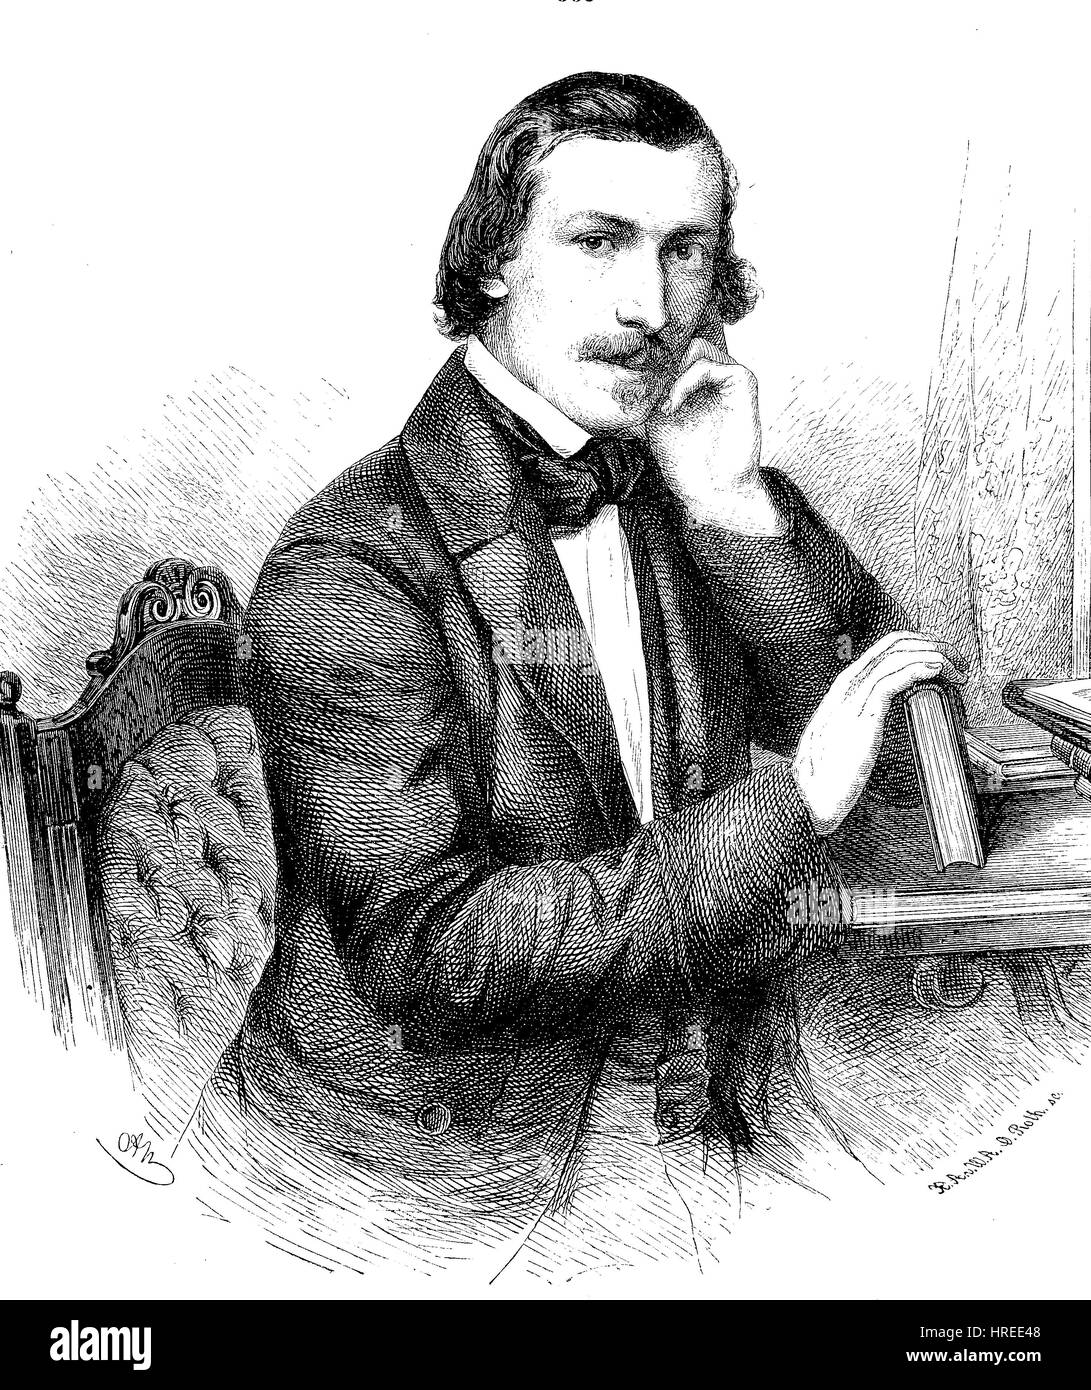 Otto Eduard Vincenz Ule, 1820 - 1876, was a German writer, known for his popularization of natural sciences,an article - Stock Image